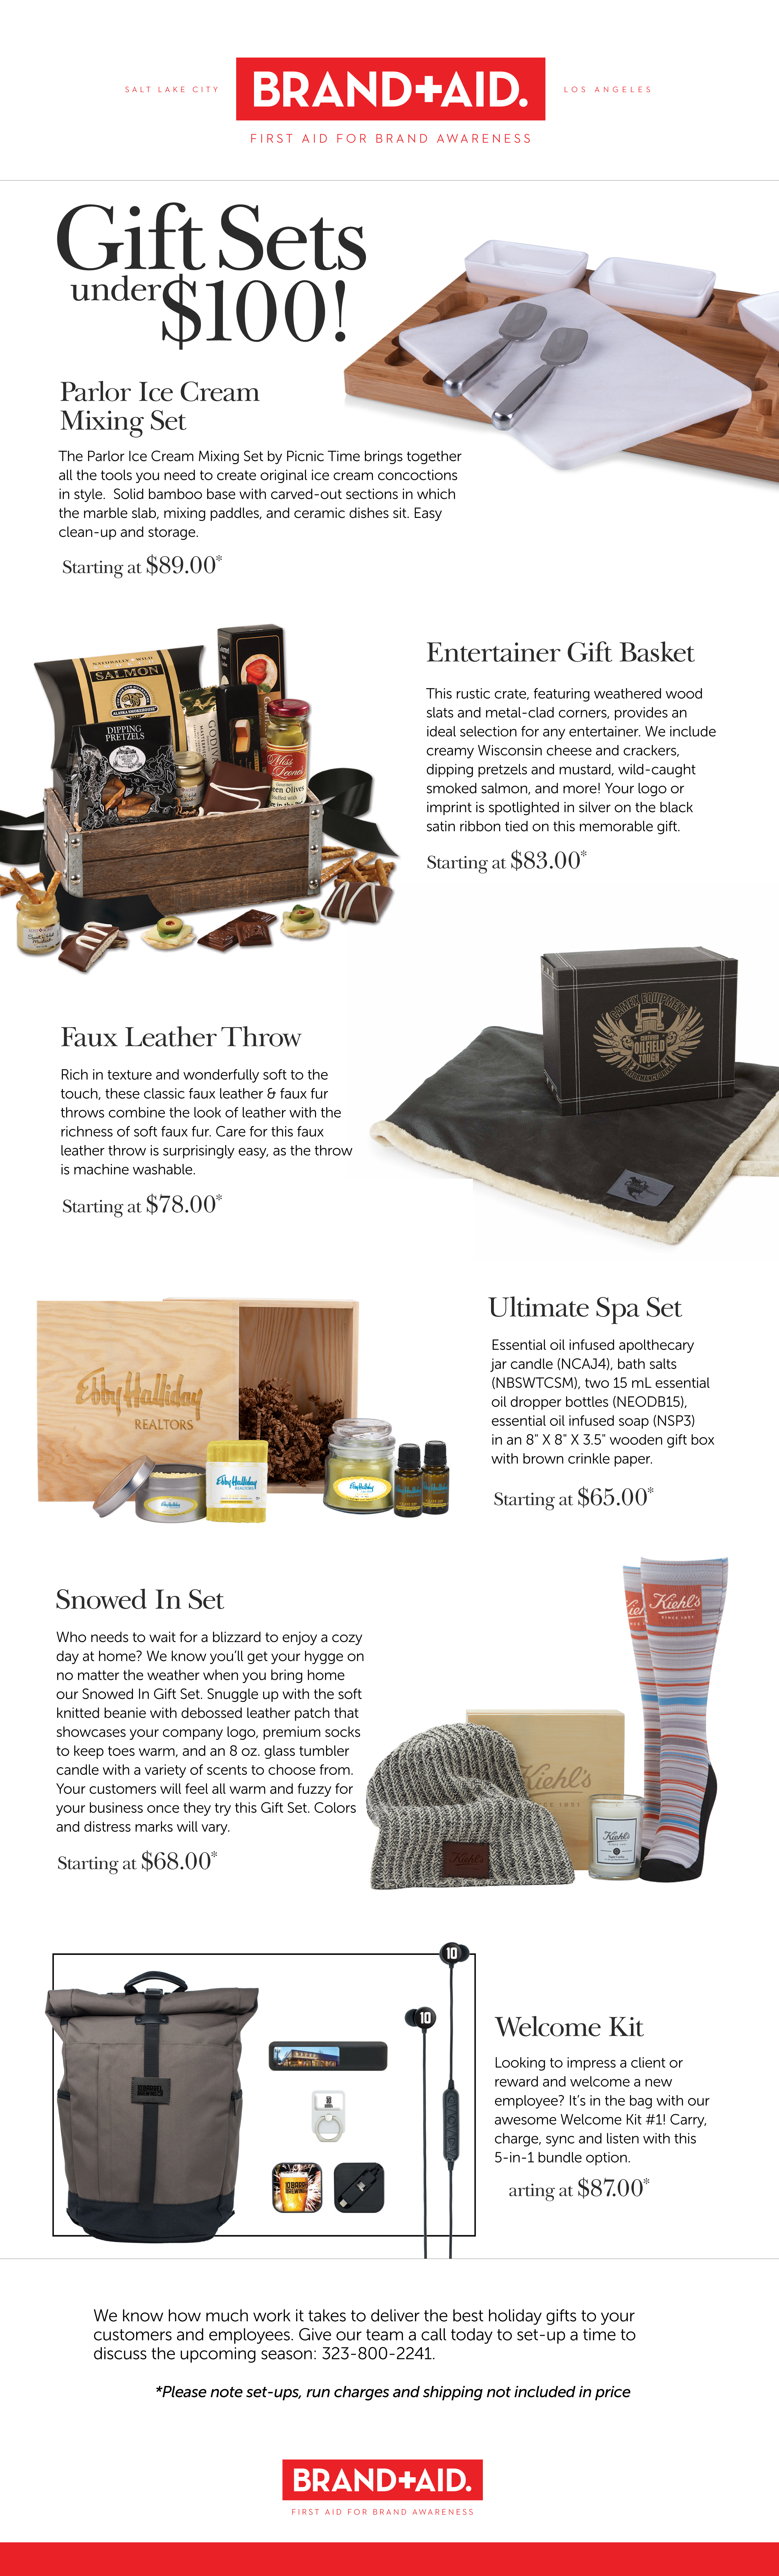 The Best Branded Gifts Under $100